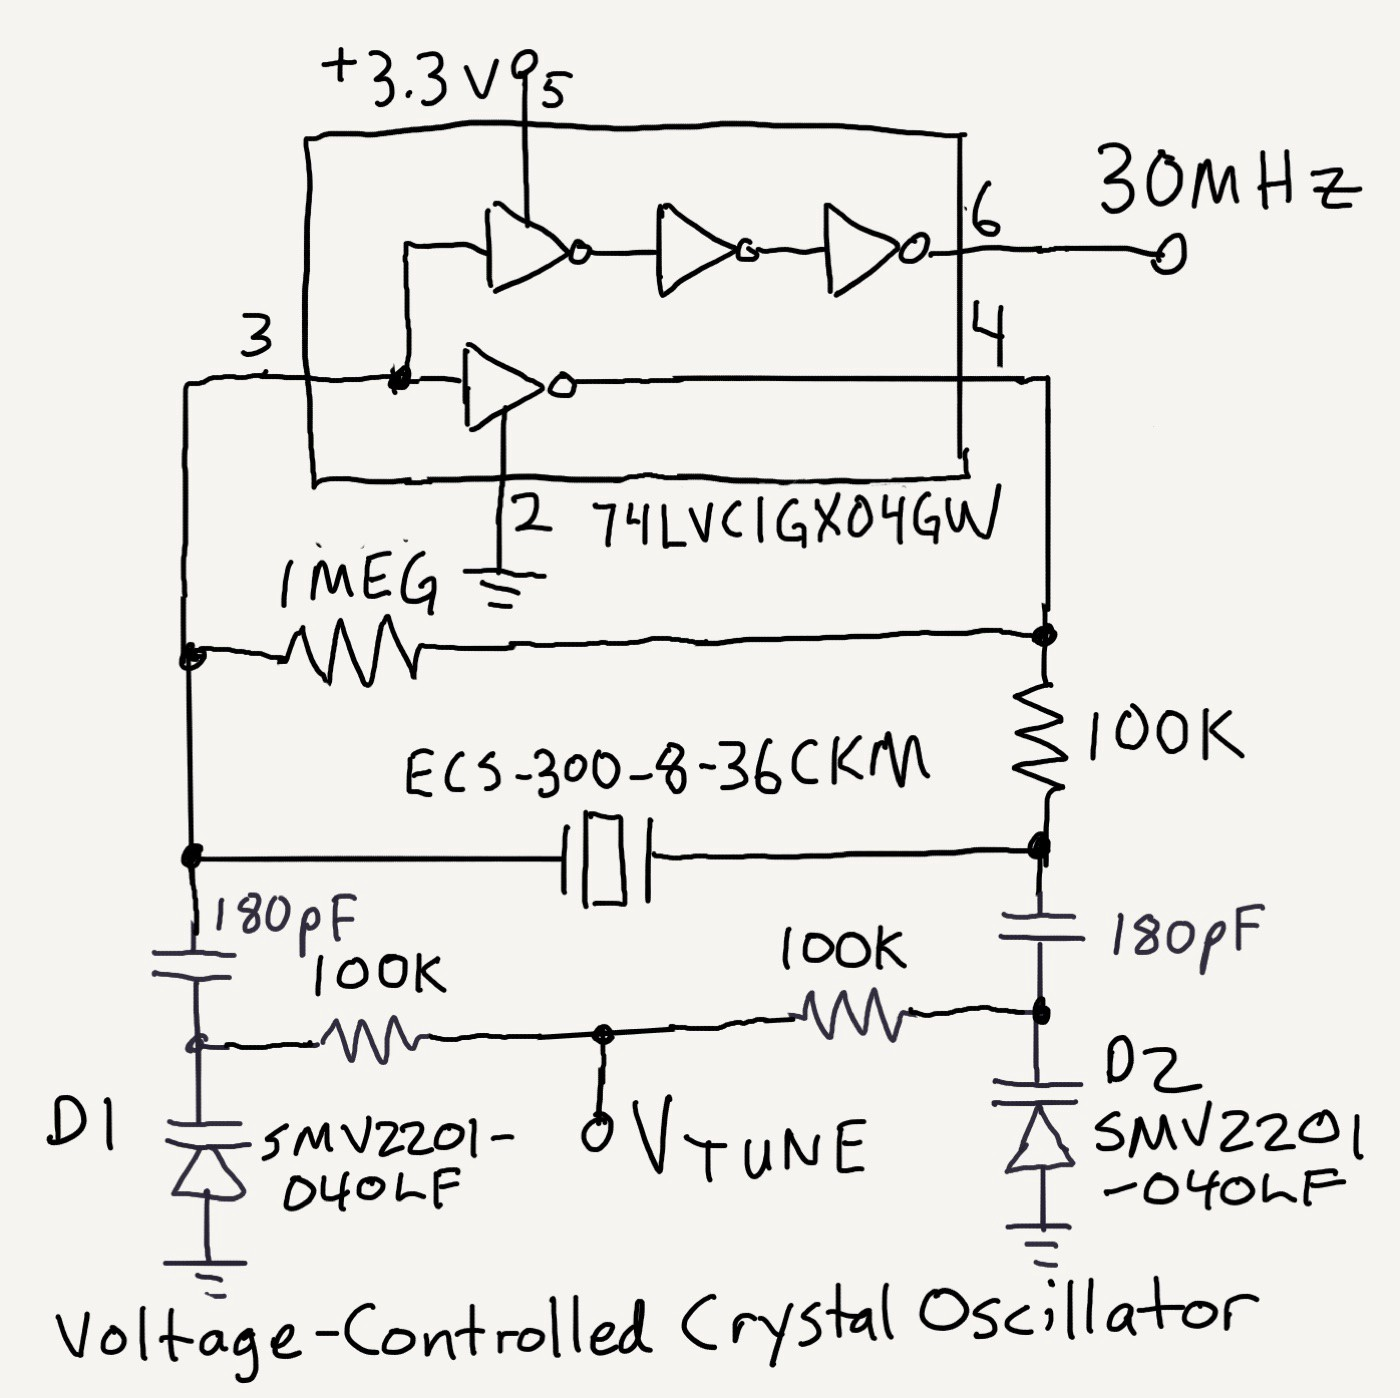 hight resolution of a diode that is reverse biased has some capacitance that varies with voltage some diodes are designed to do this in a predictable way